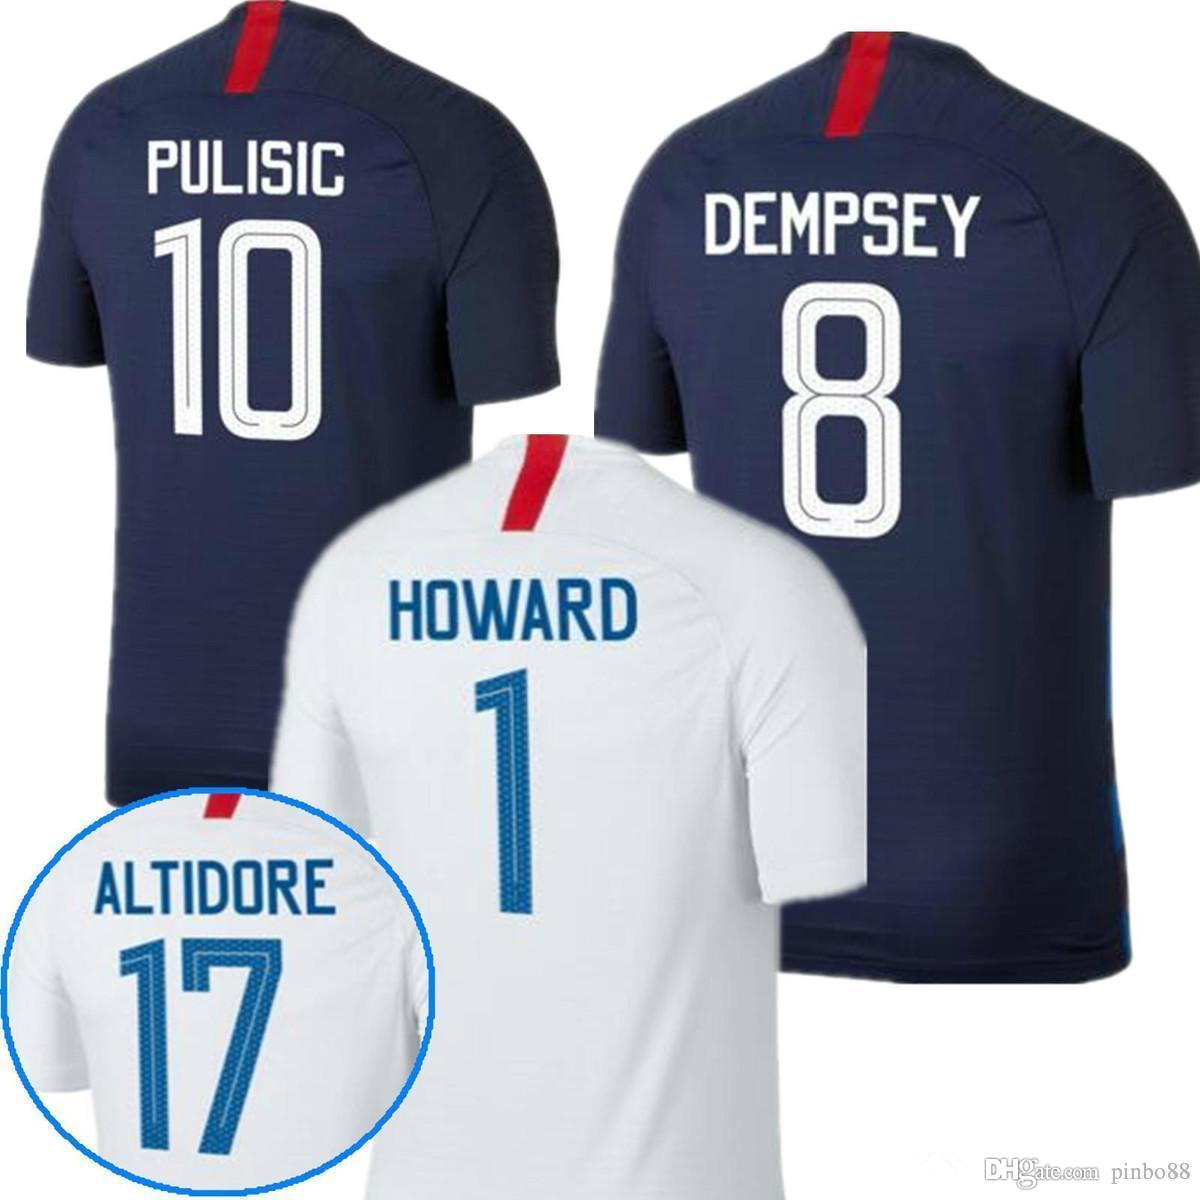 81394bb69ad 2019 Customized 18 19 Home Away New Arrival Cheap Hot Sale Thai Quality  2018 2019 Soccer Jersey 18 19 Men Football Jerseys Shirt Size S XXL From  Pinbo88, ...